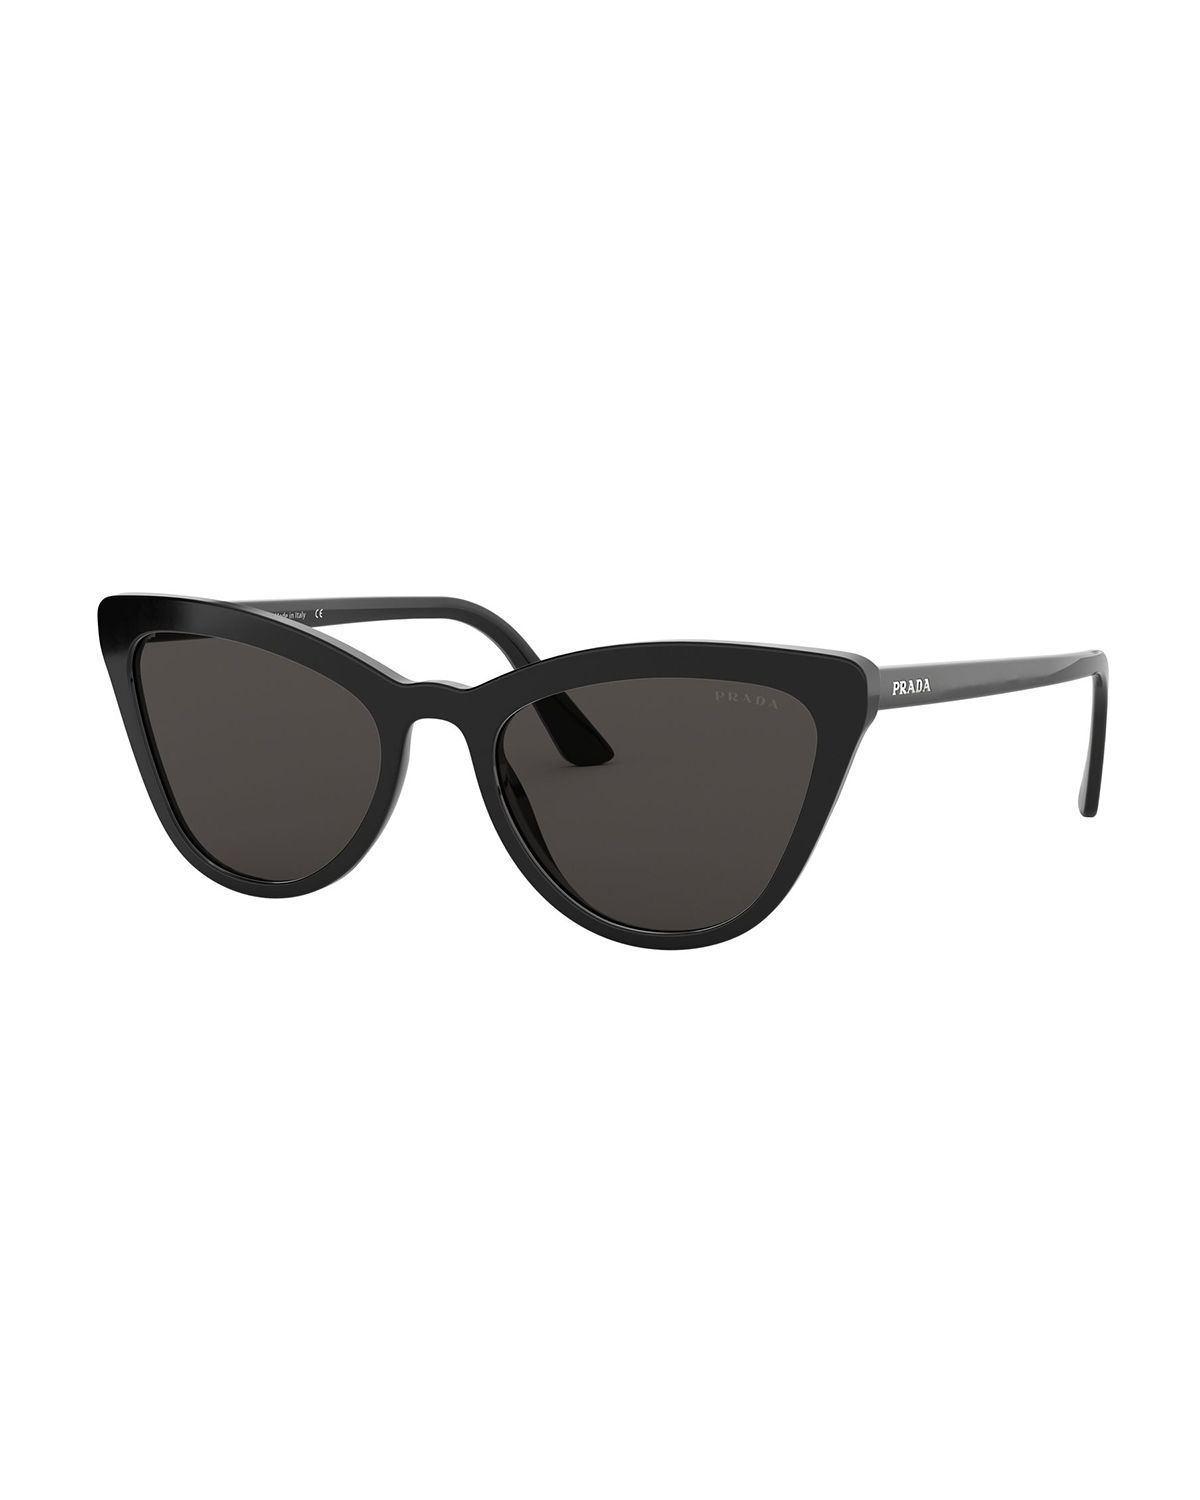 149a678ea3a0 Prada Acetate Cat-Eye Sunglasses